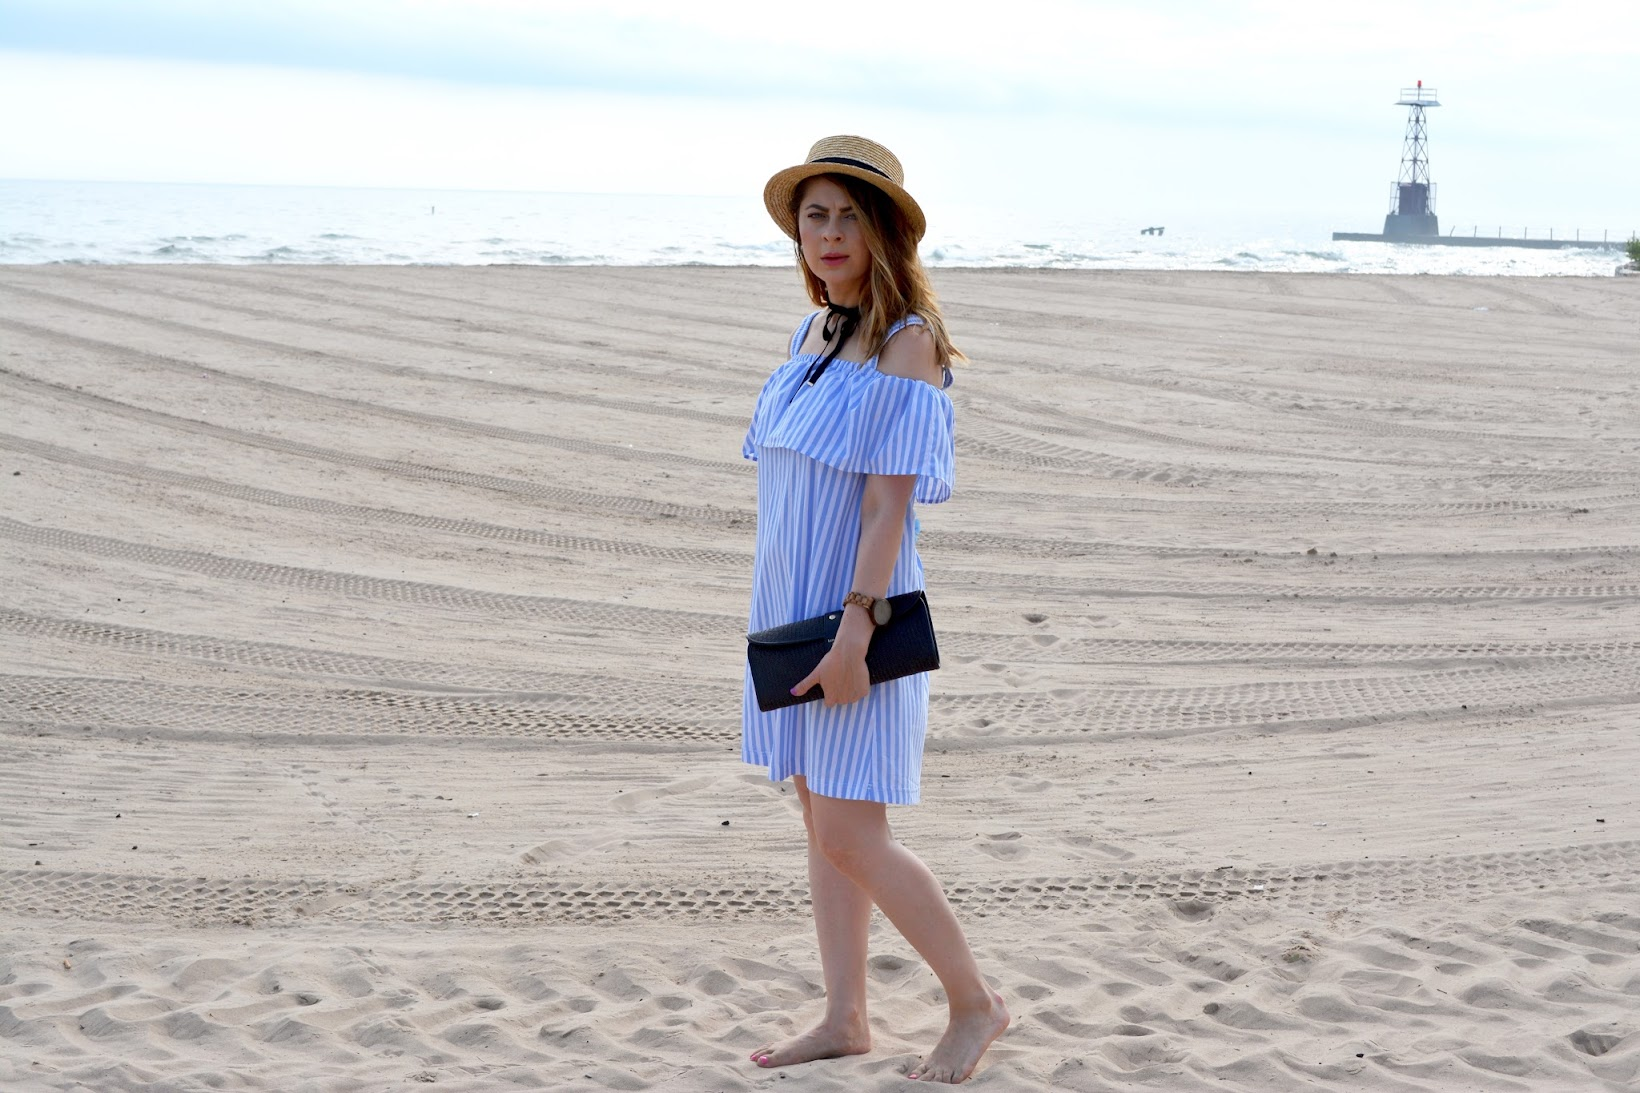 Chicago blogger, Chicago style blogger, bloguera de estilo, Latina blogger, bloguera latina, SheIn Multicolor Striped Cold Shoulder Ruffle Shift Dress, striped cold shoulder dress, Foster beach Chicago, Chicago beaches, summer style, estilo verano, vestido hombros descubiertos, vestido a rayas sin mangas, straw boater hat, lace-up wedges, Forever 21 chokers, gargantillas de Forever 21, Kate Spade straw clutch, Jord Wood Watch, Frankie and Ash wood watch, Wet Seal wedges, SheIn dress, SheIn blogger, playas de Chicago, veranos por la playa, Lake Michigan beaches, playas por el Lago Michigan, relojes de madera, Mixed Co. salon, Mixed Co. balyage, beachside cold shoulder dresses, vestidos hombros al aire,